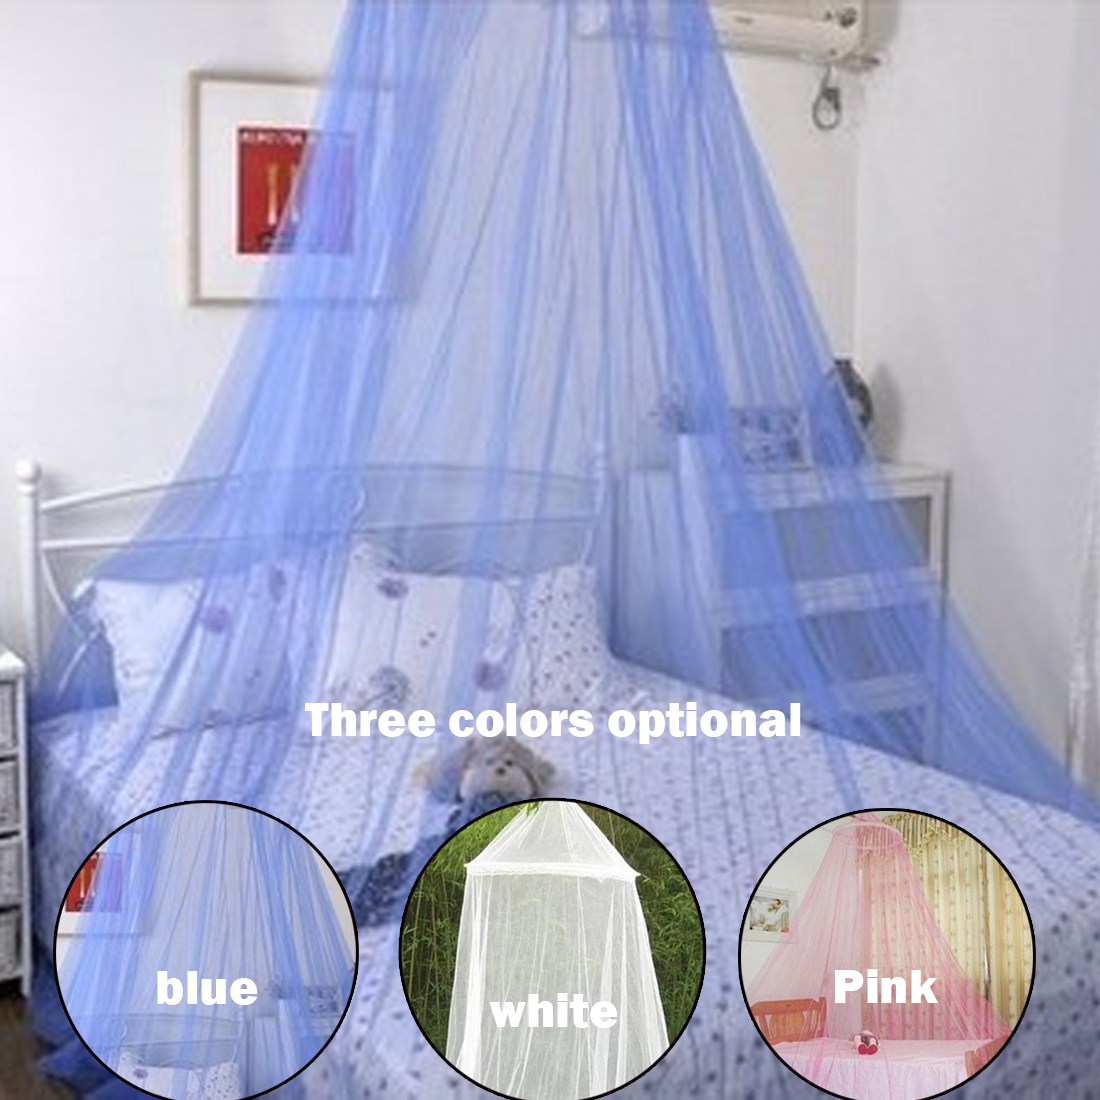 1Pcs 3Colors Direct Moustiquaire Dome Lace Hanging Mosquito Nets Classical Palace Mosquito Nets